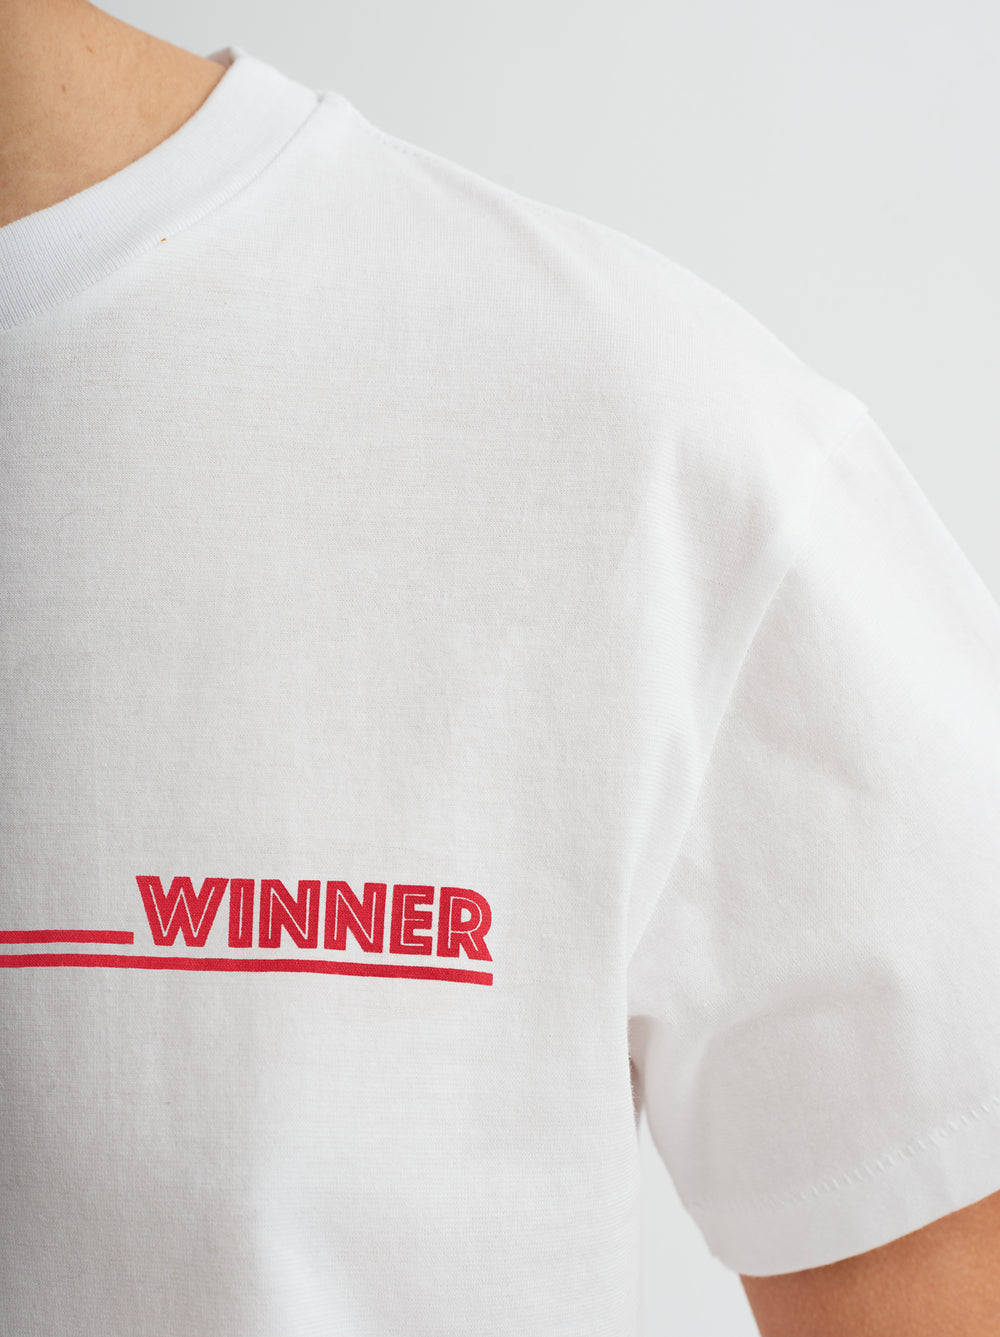 Winner Printed Cotton Crew Neck T-shirt by KITRI Studio